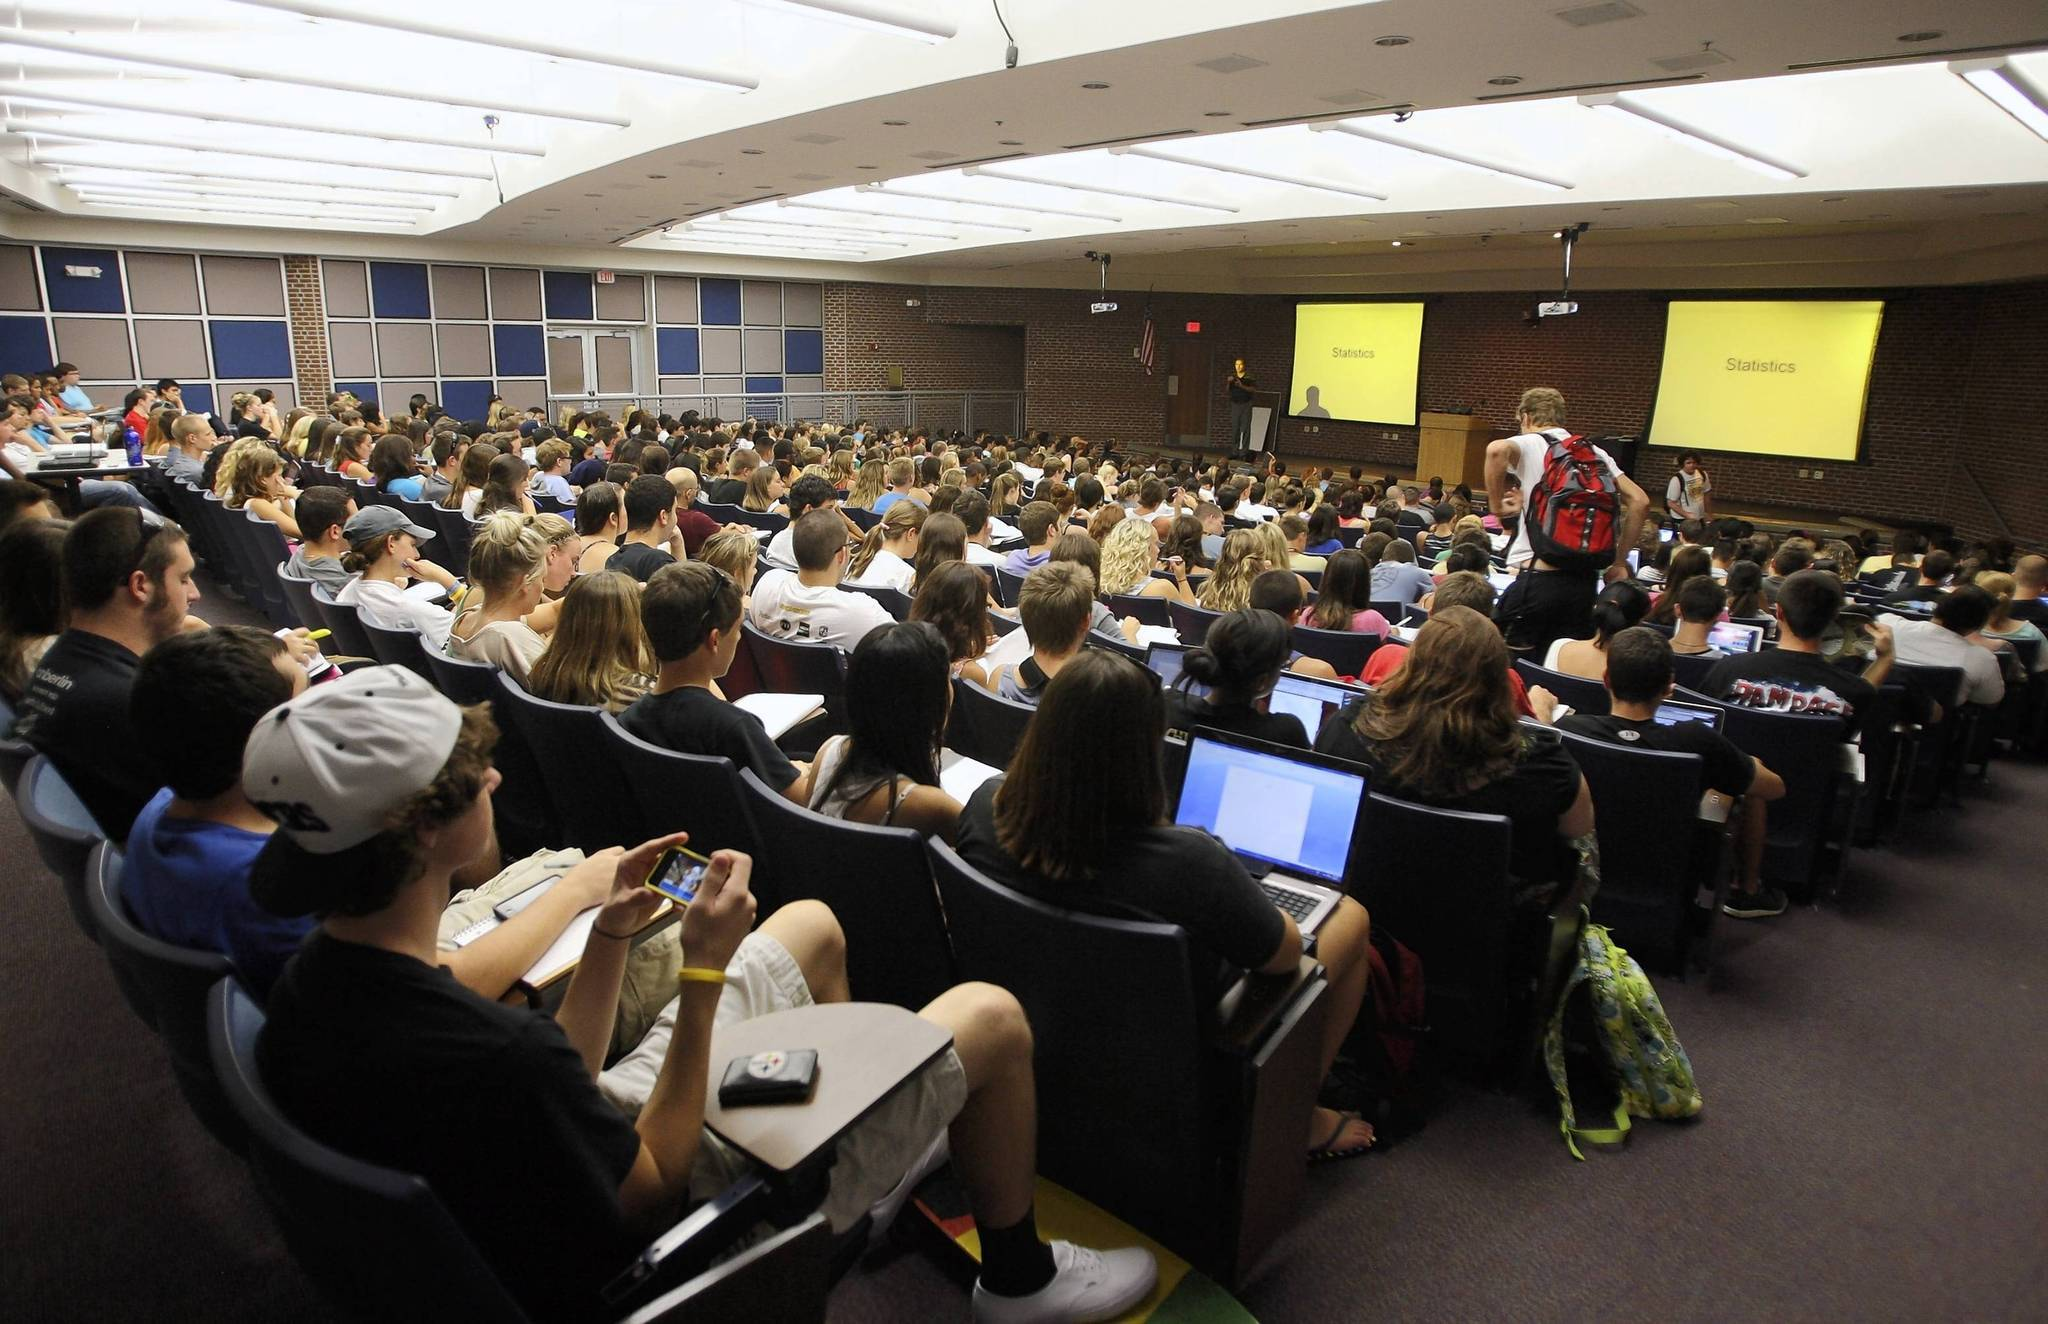 UCF professor Charles Negy teaches 448 students in his general psychology class on Thursday, September 6, 2012. UCF is the second-largest public university by enrollment.